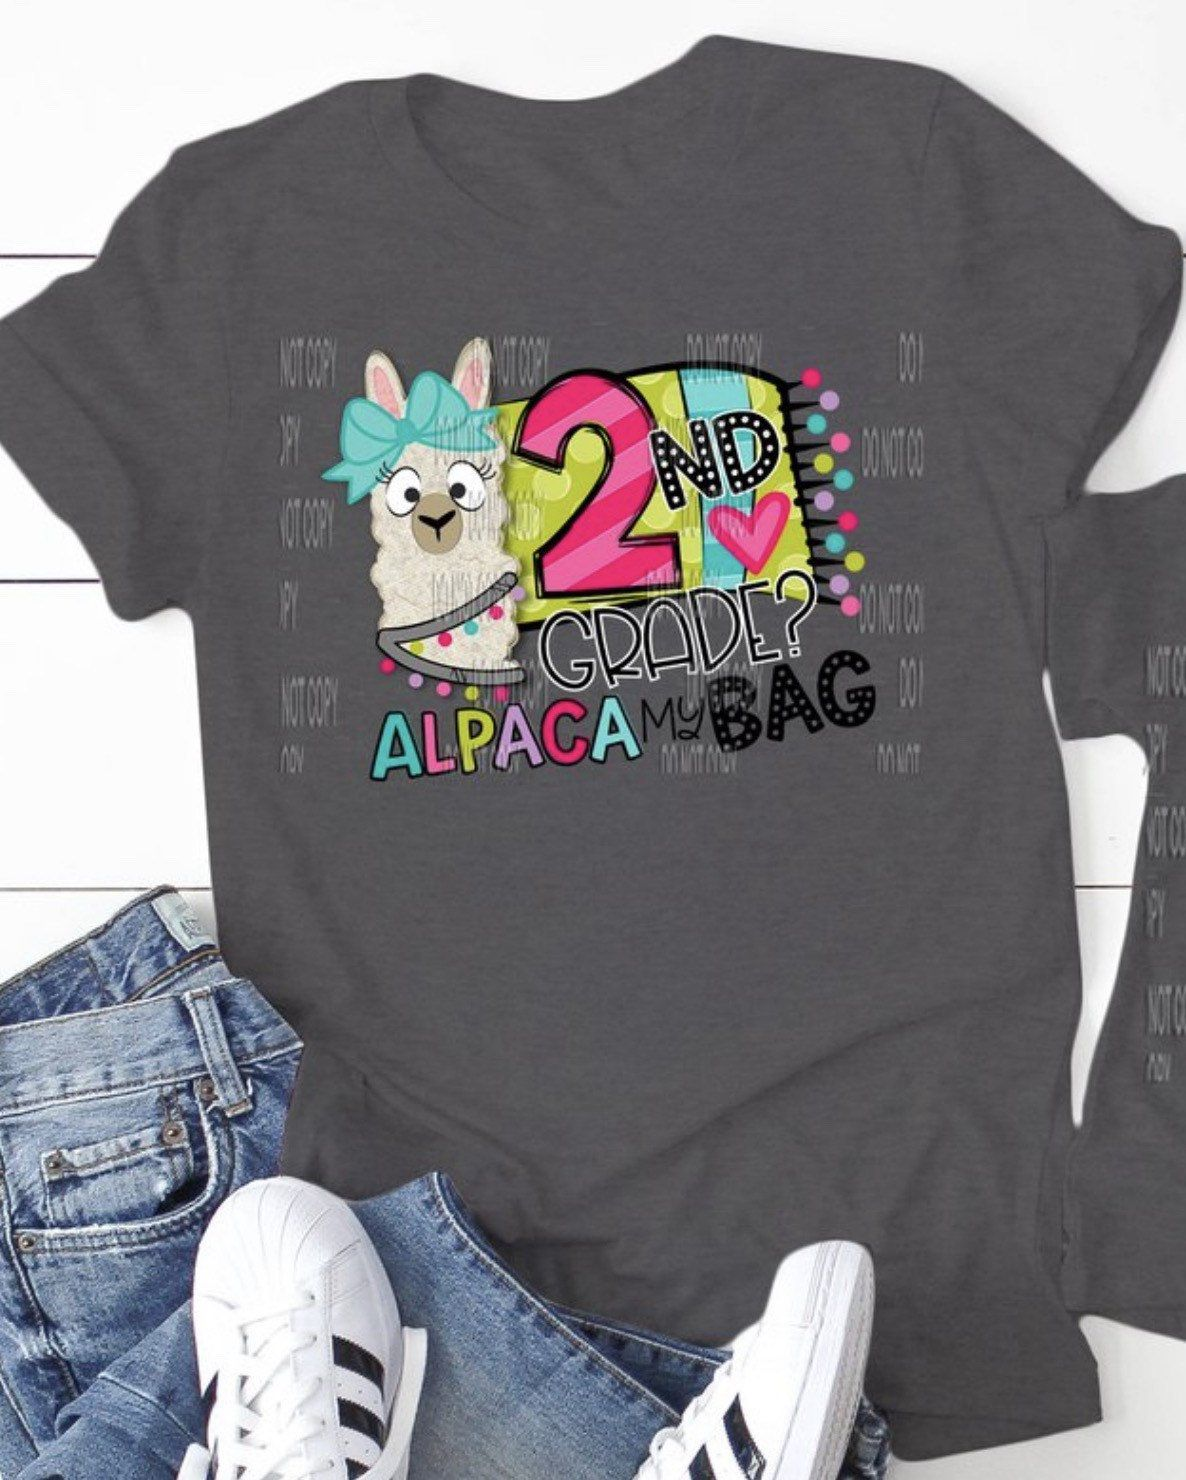 Pre-K -6th Grade, ALPACA BAG, 1st Day of School, Lama, Custom, Multi-Colored, Graphic T-Shirt #firstdayofschooloutfits